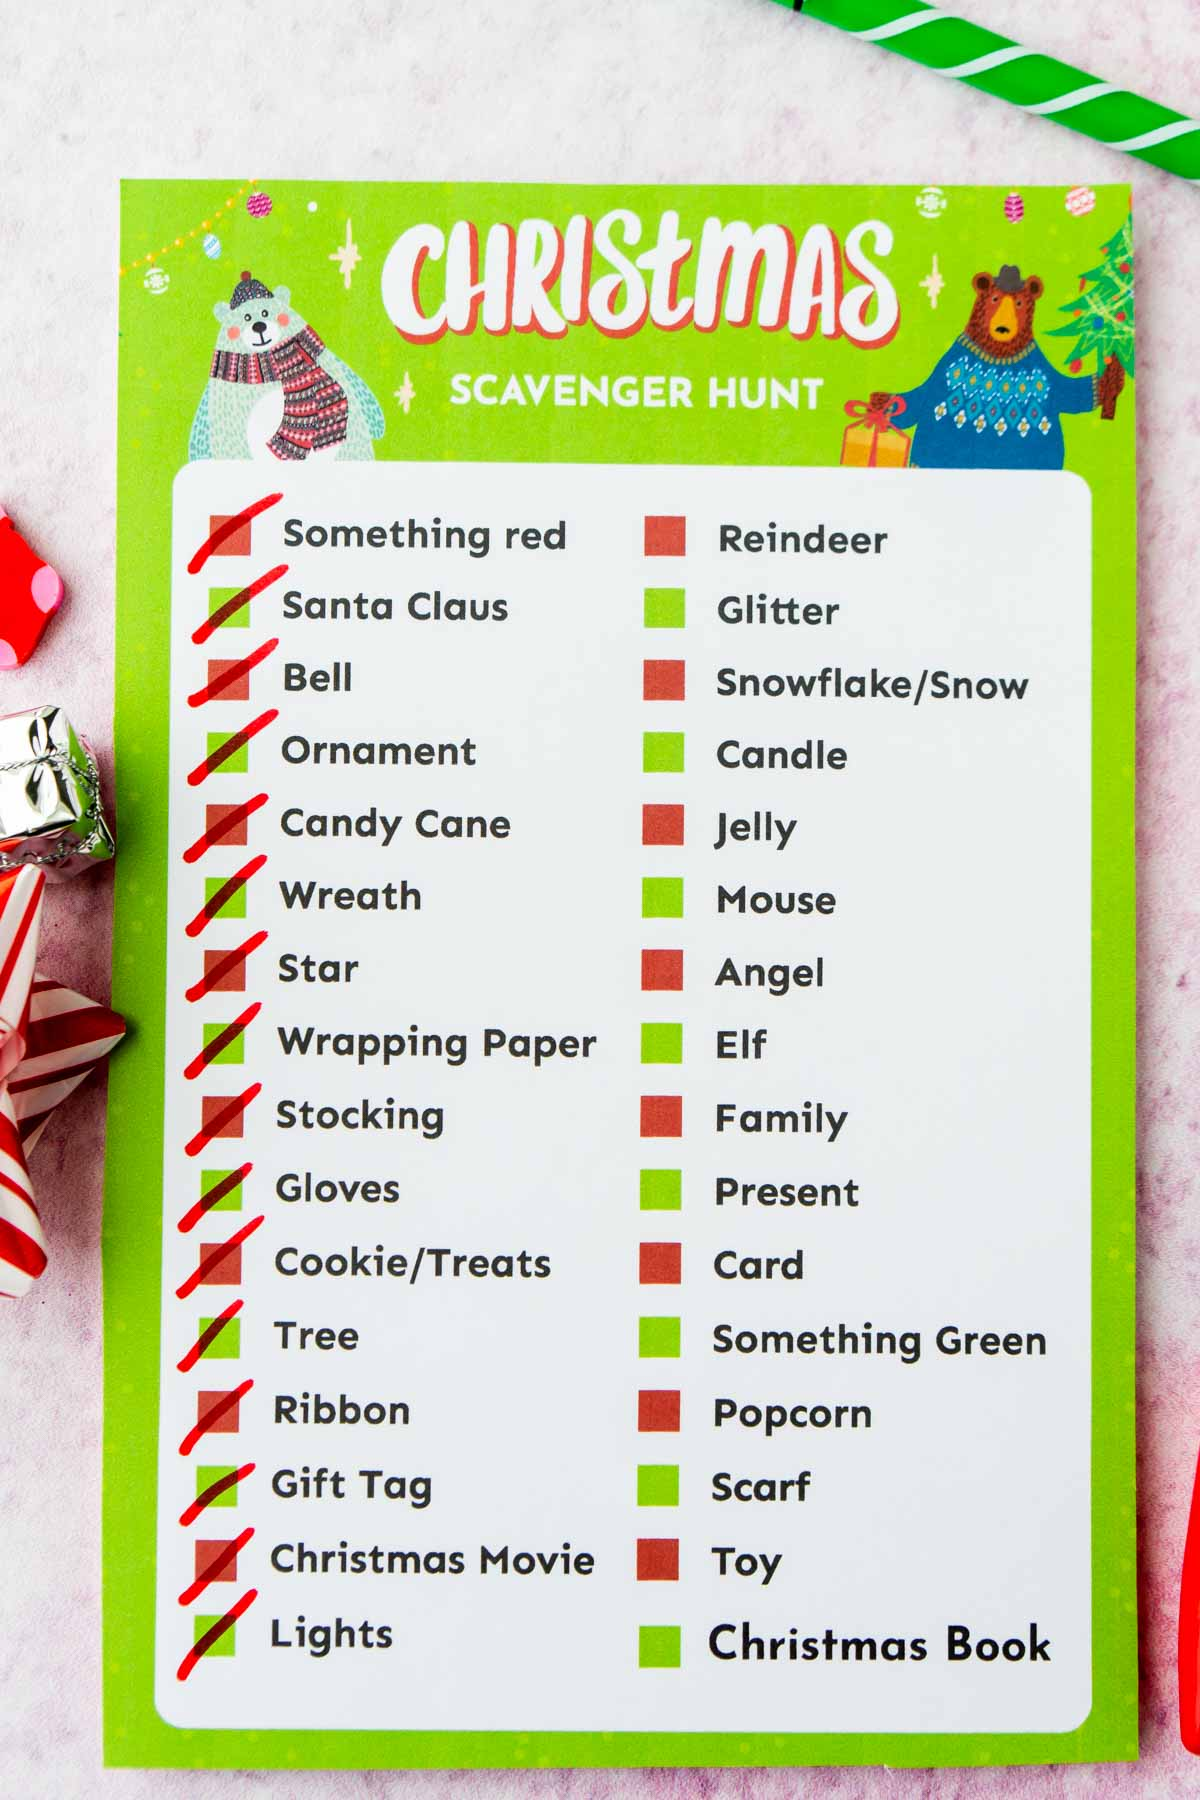 Christmas scavenger hunt with items checked off